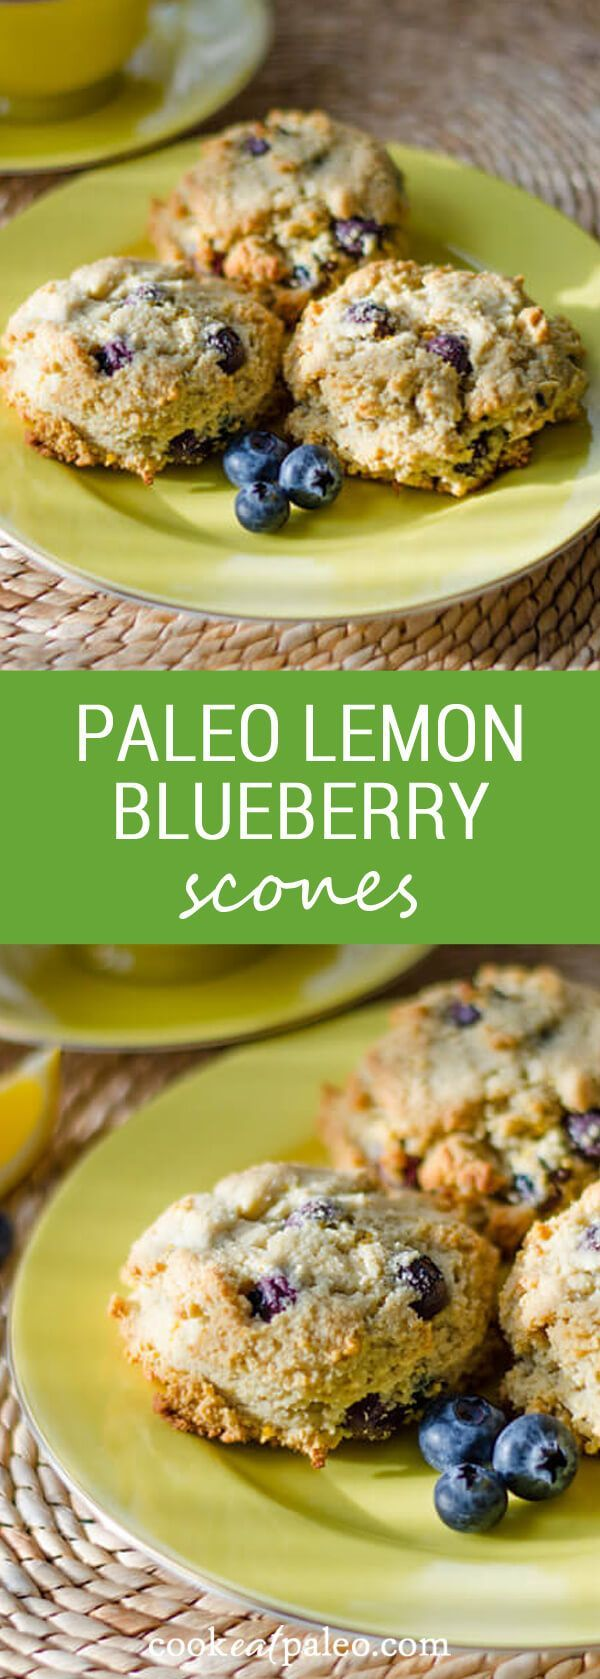 These paleo lemon blueberry scones are gluten-free, grain-free, dairy-free and refined sugar-free. Perfect for breakfast with... via @cookeatpaleo